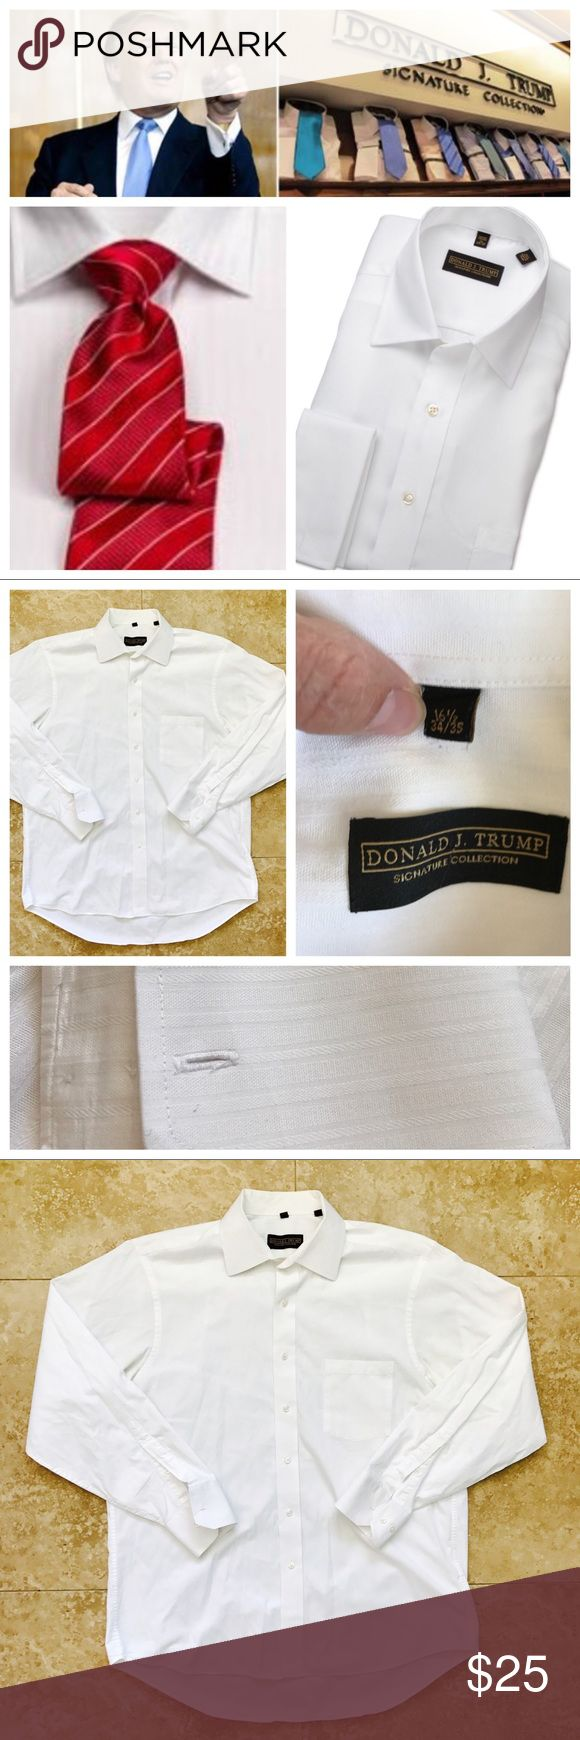 Donald Trump signature shirt bundle Donald Trump dress shirt bundle. Donald Trump Signature Collection Dress Shirts Our Donald Trump signature dress shirts represent the entrepreneur on the go and always in the mix of business at hand. The quality are representative of power and status and will fit like a glove with suits of the same stature. Whether you are a Shareholder, CEO, Manager, Corporate Climber or on your first job interview after college, the Donald Trump signature dress shirts…